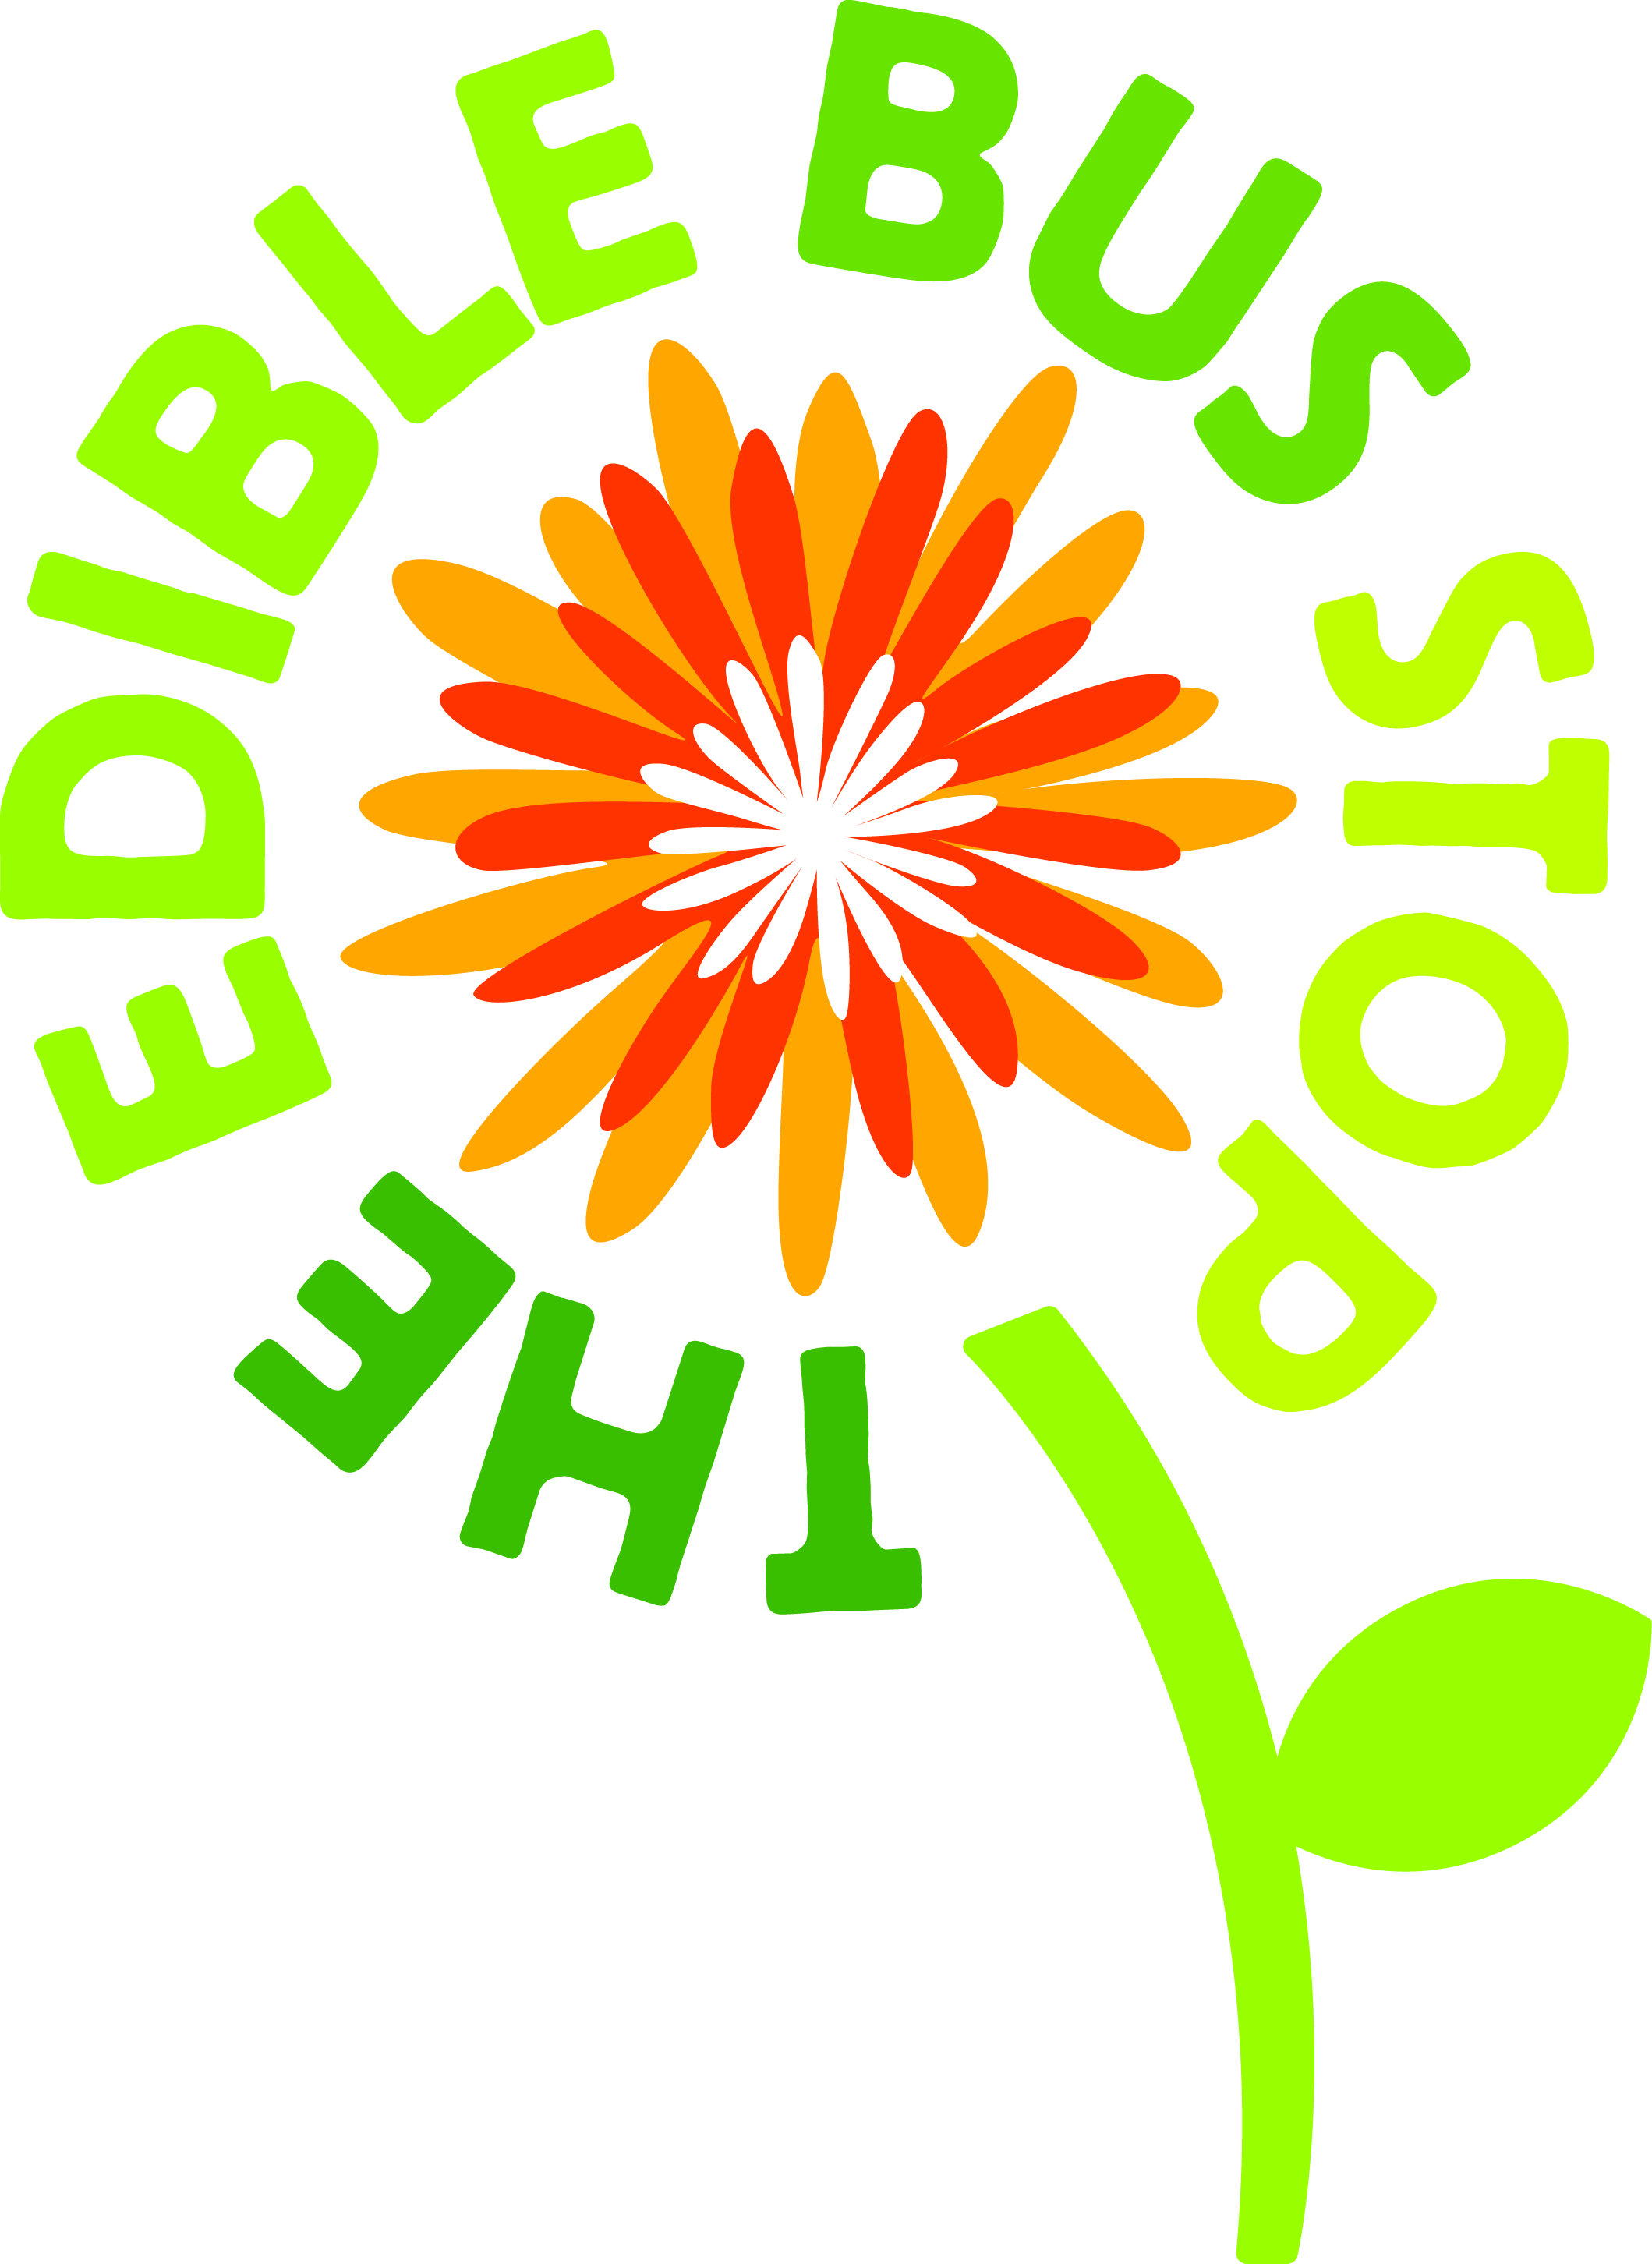 The Edible Bus Stop logo